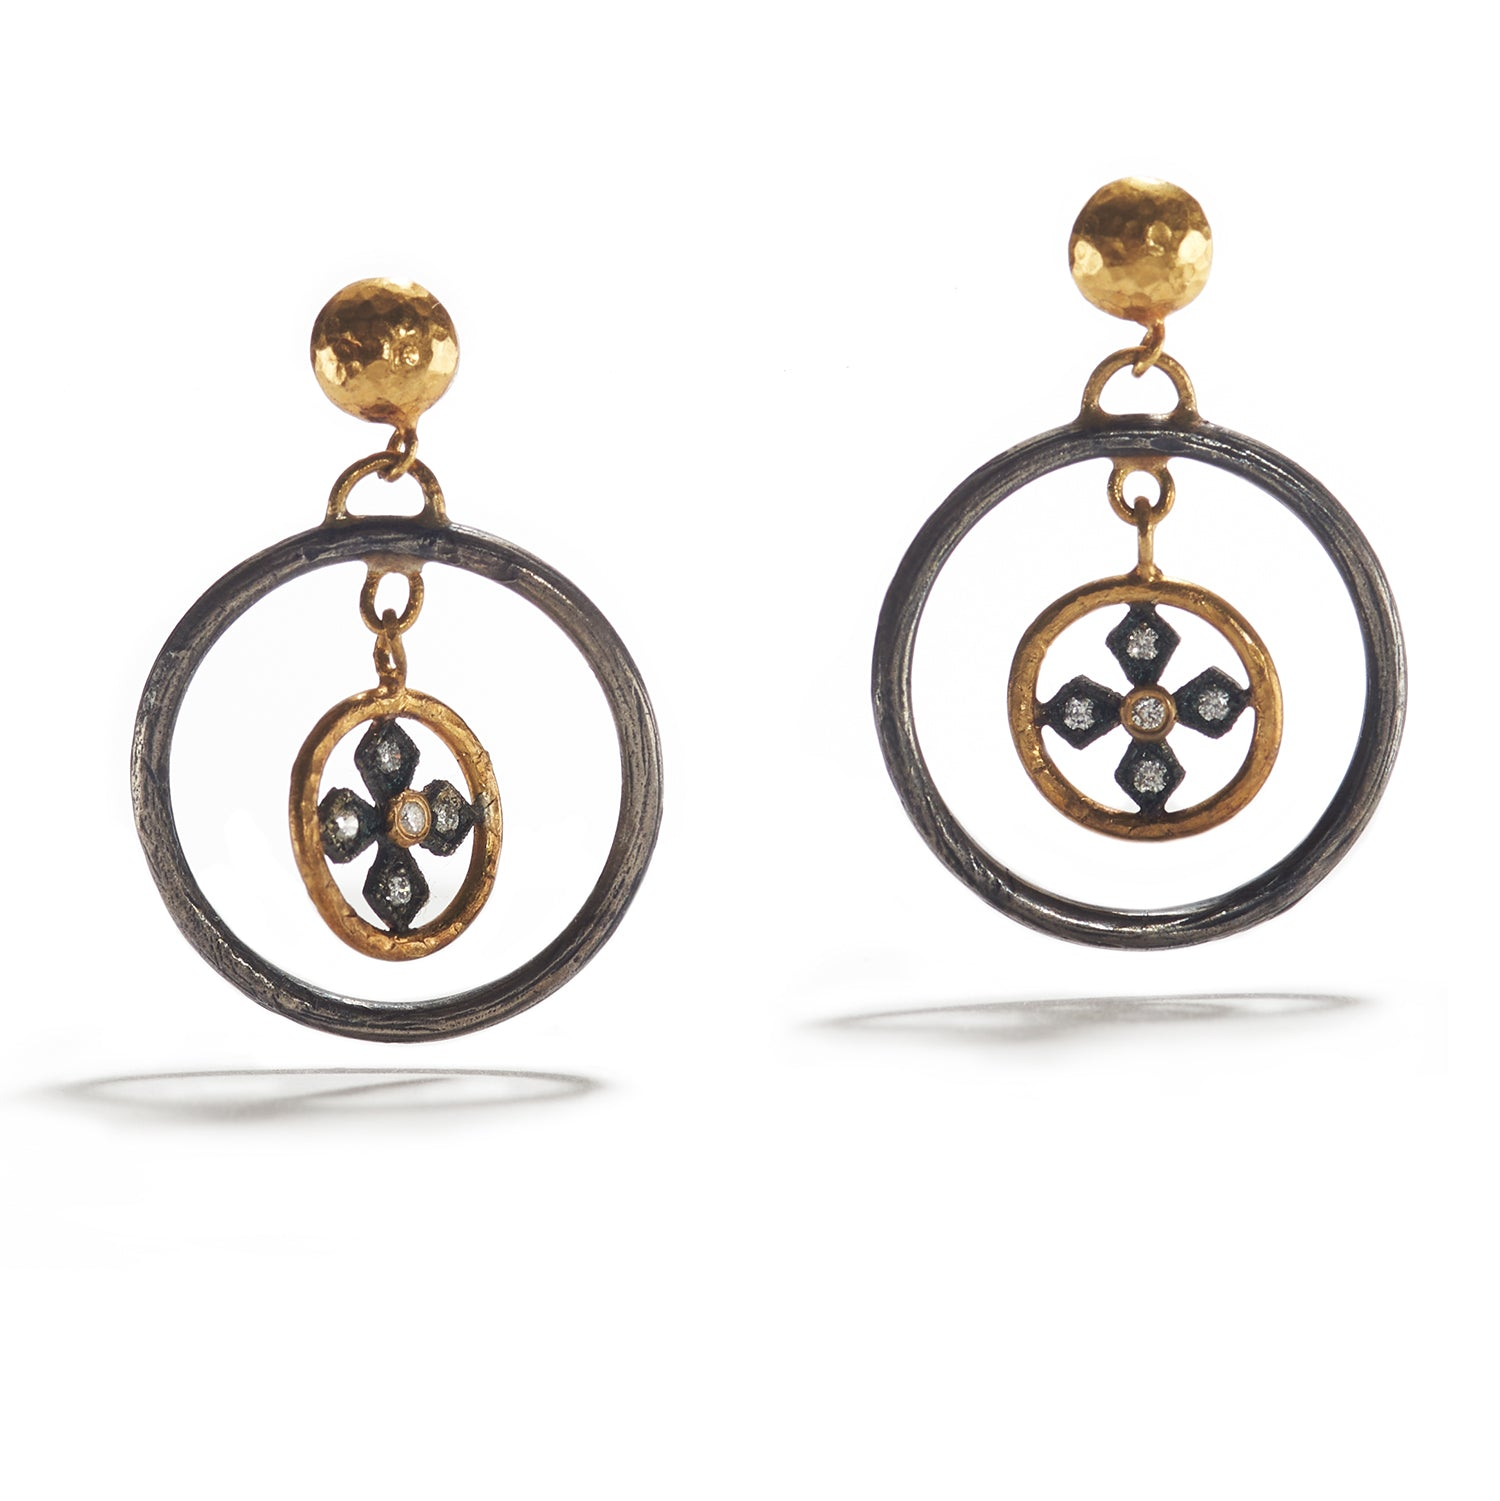 Double Ring of Gold and Silver Earrings